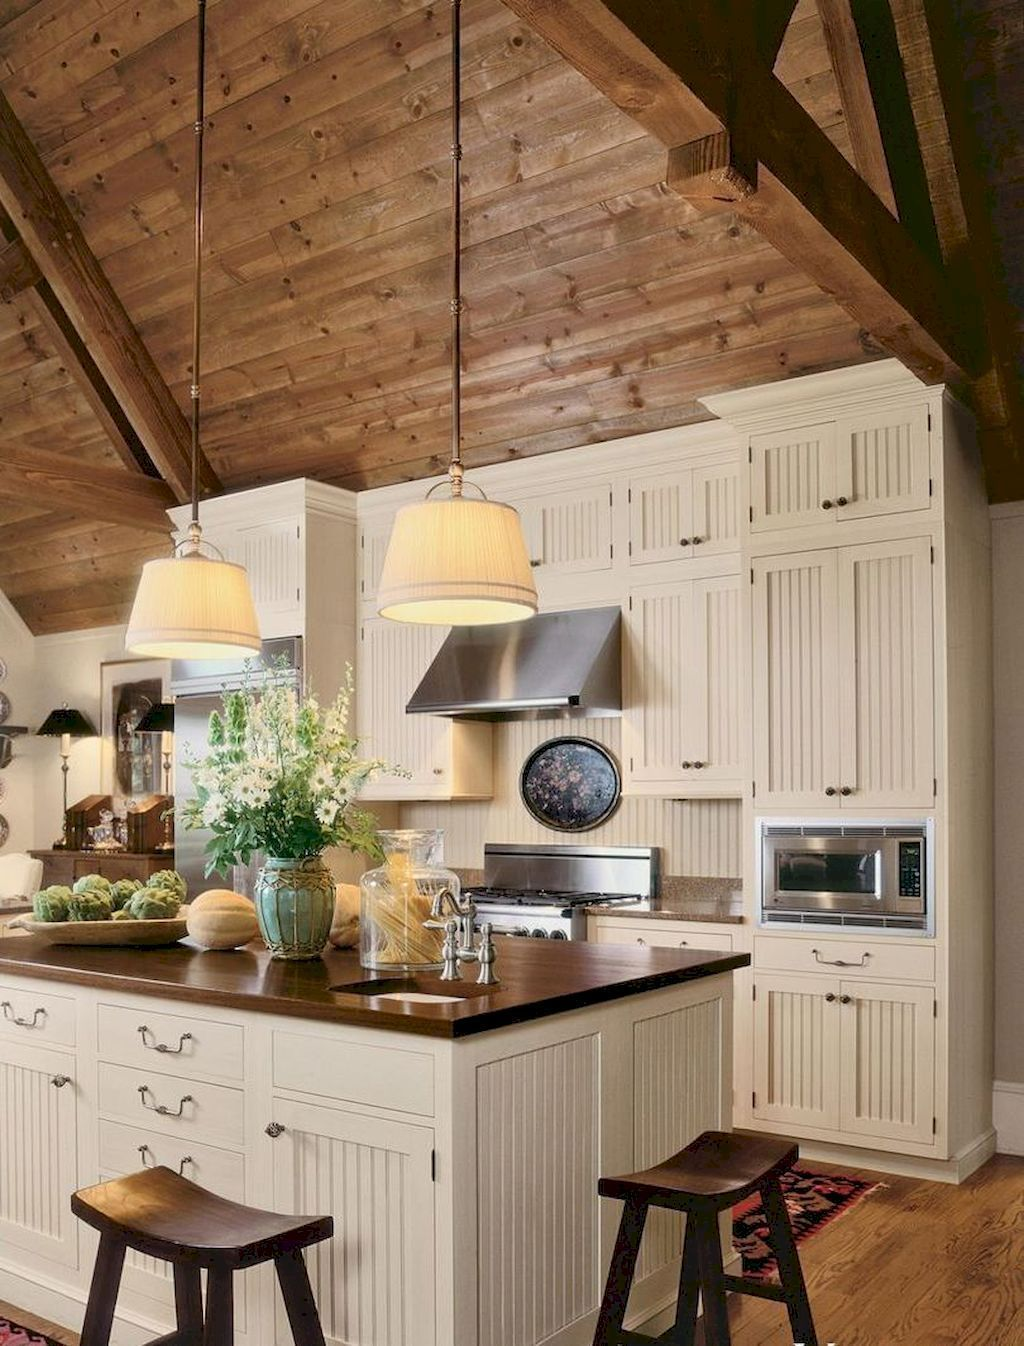 10 Stunning Unique Ideas: Rustic Baby Announcement rustic ... on rustic galley kitchens, living rooms ideas, rustic looking kitchens, rustic tin backsplash, rustic interior design, rustic outdoor kitchens, rustic doors, rustic open kitchens, rustic farmhouse kitchens, rustic lighting, rustic home kitchens, rustic country kitchens, rustic designer kitchens, rustic italian kitchens, rustic cabinet hardware, rustic cottage kitchens, rustic living rooms, rustic style,